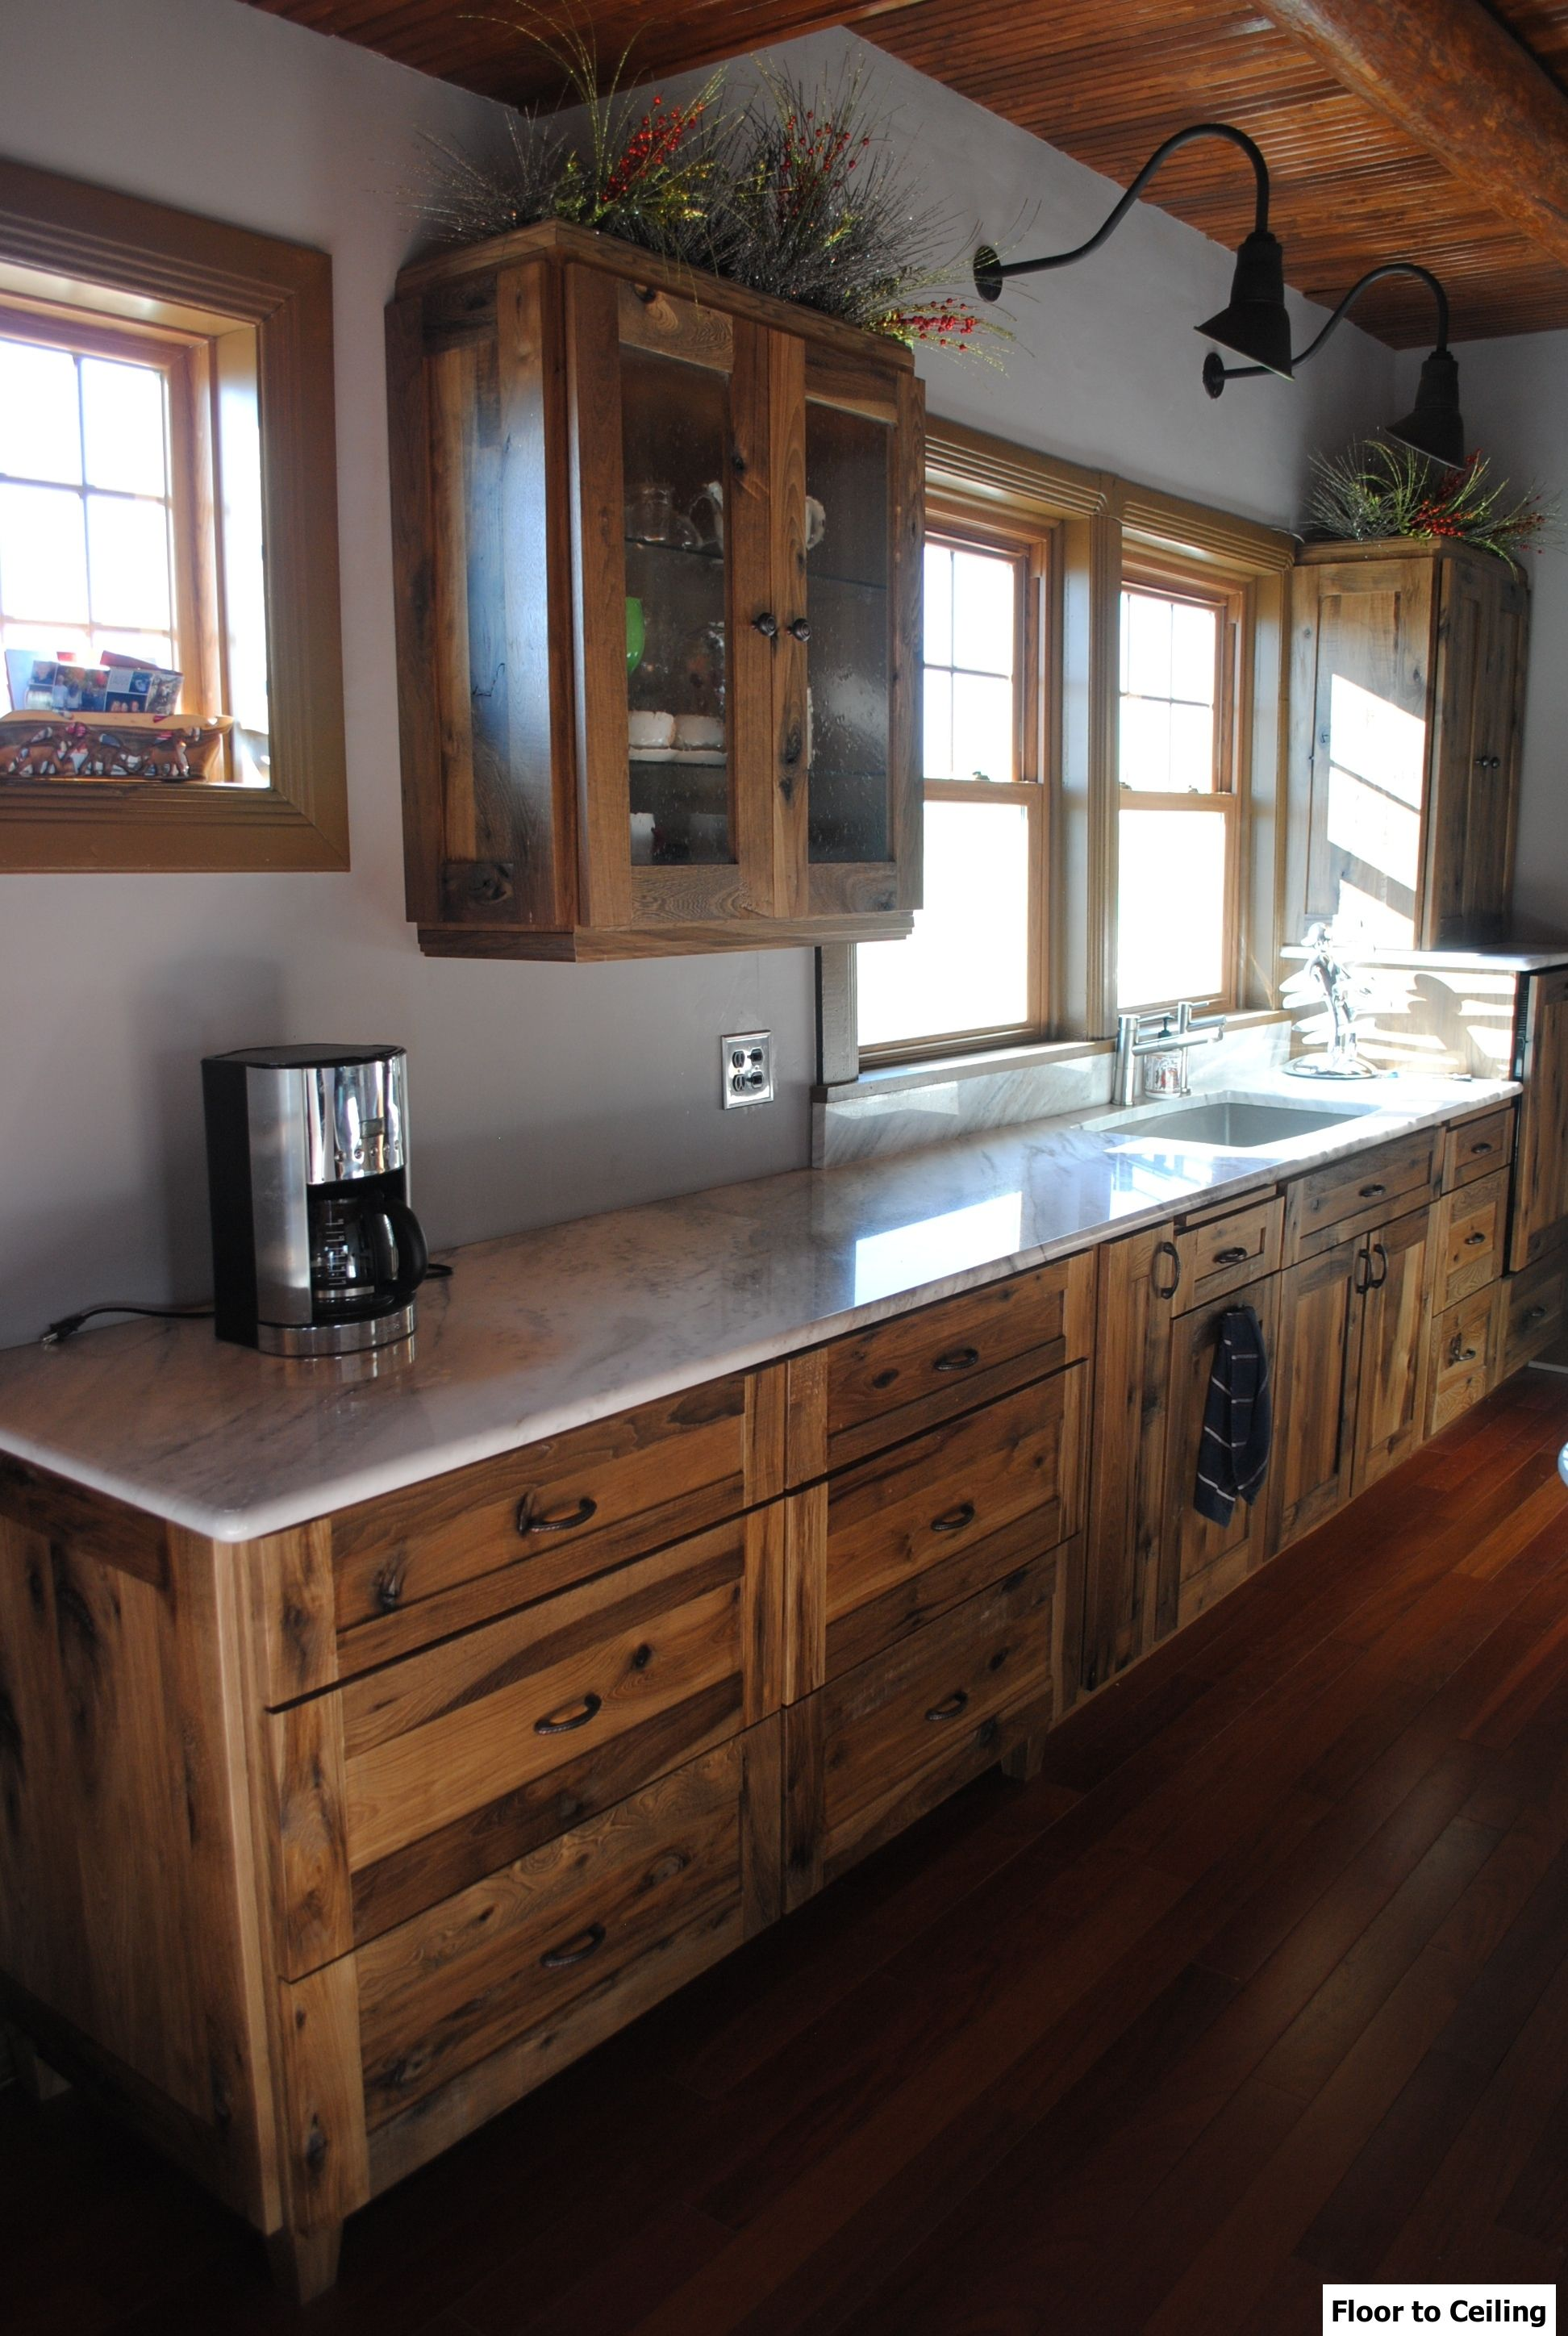 Log Cabin Kitchen Remodel. Installed Woodland Cabinetry Rustic Farmstead  Door, Hickory Wood With Patina